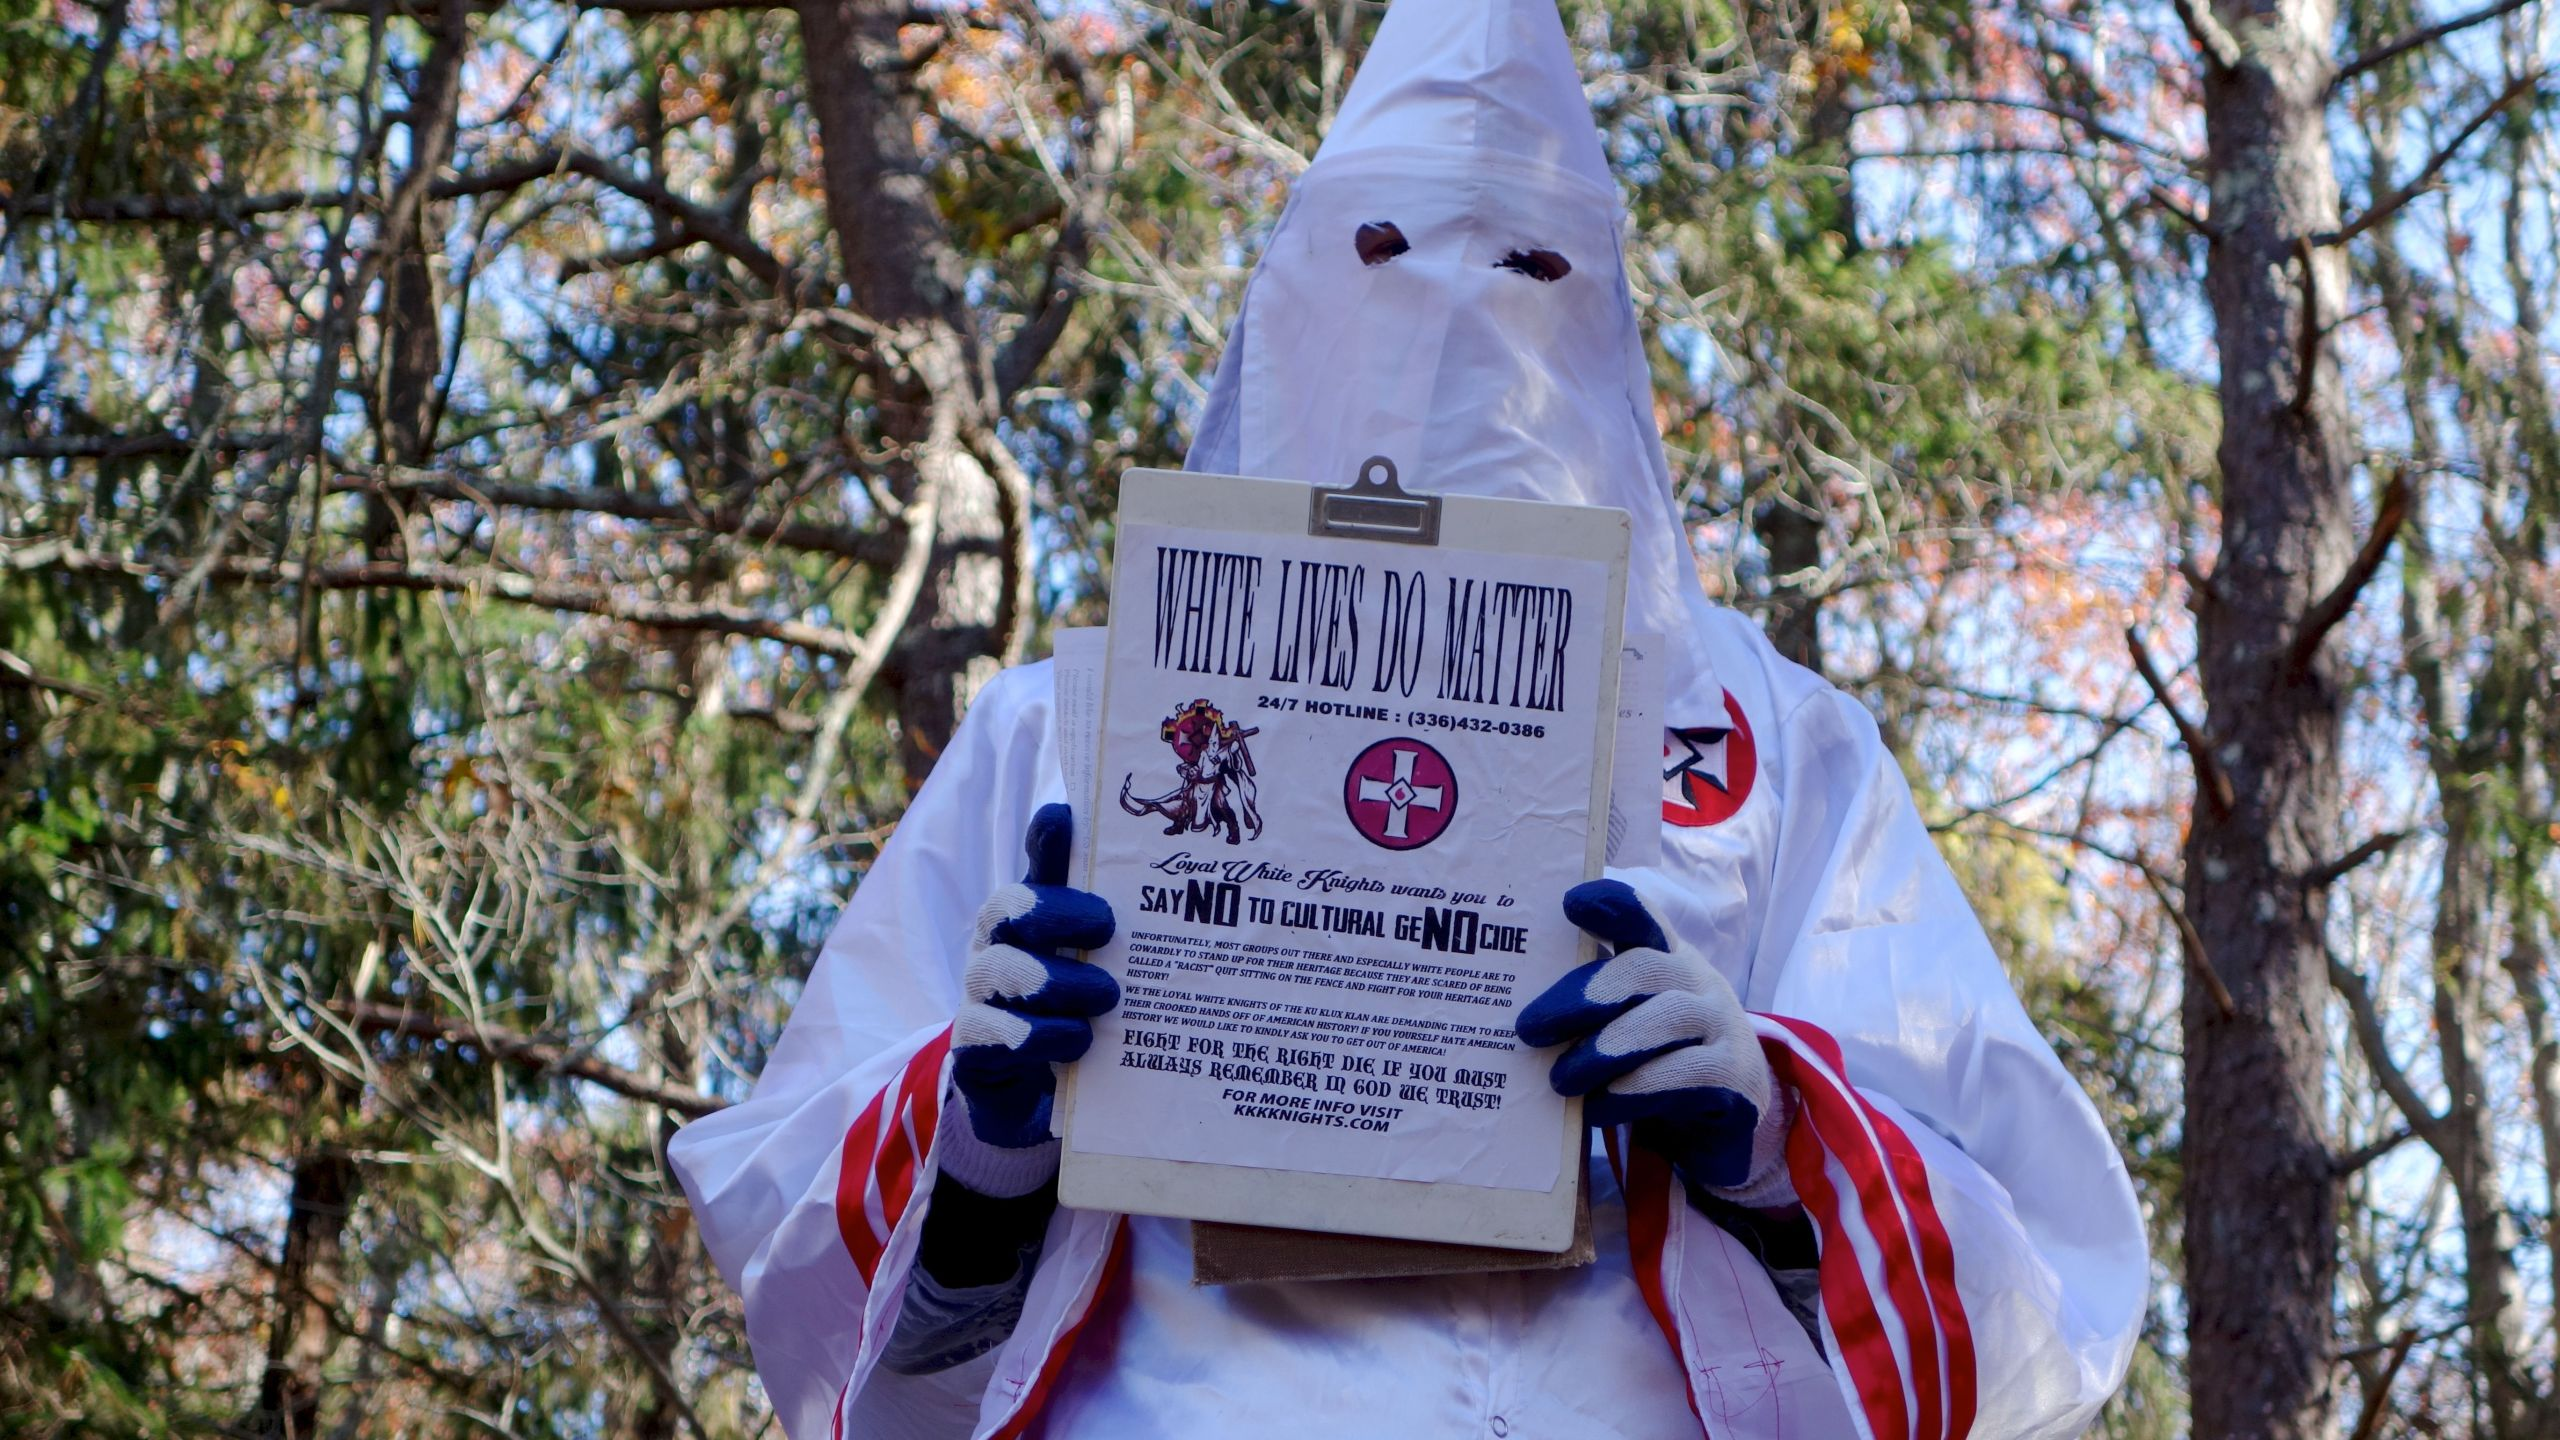 A member of the Ku Klux Klan who says his name is Gary Munker poses for a photo during an interview with AFP in Hampton Bays, New York on Nov. 22, 2016. (Credit: WILLIAM EDWARDS/AFP/Getty Images)